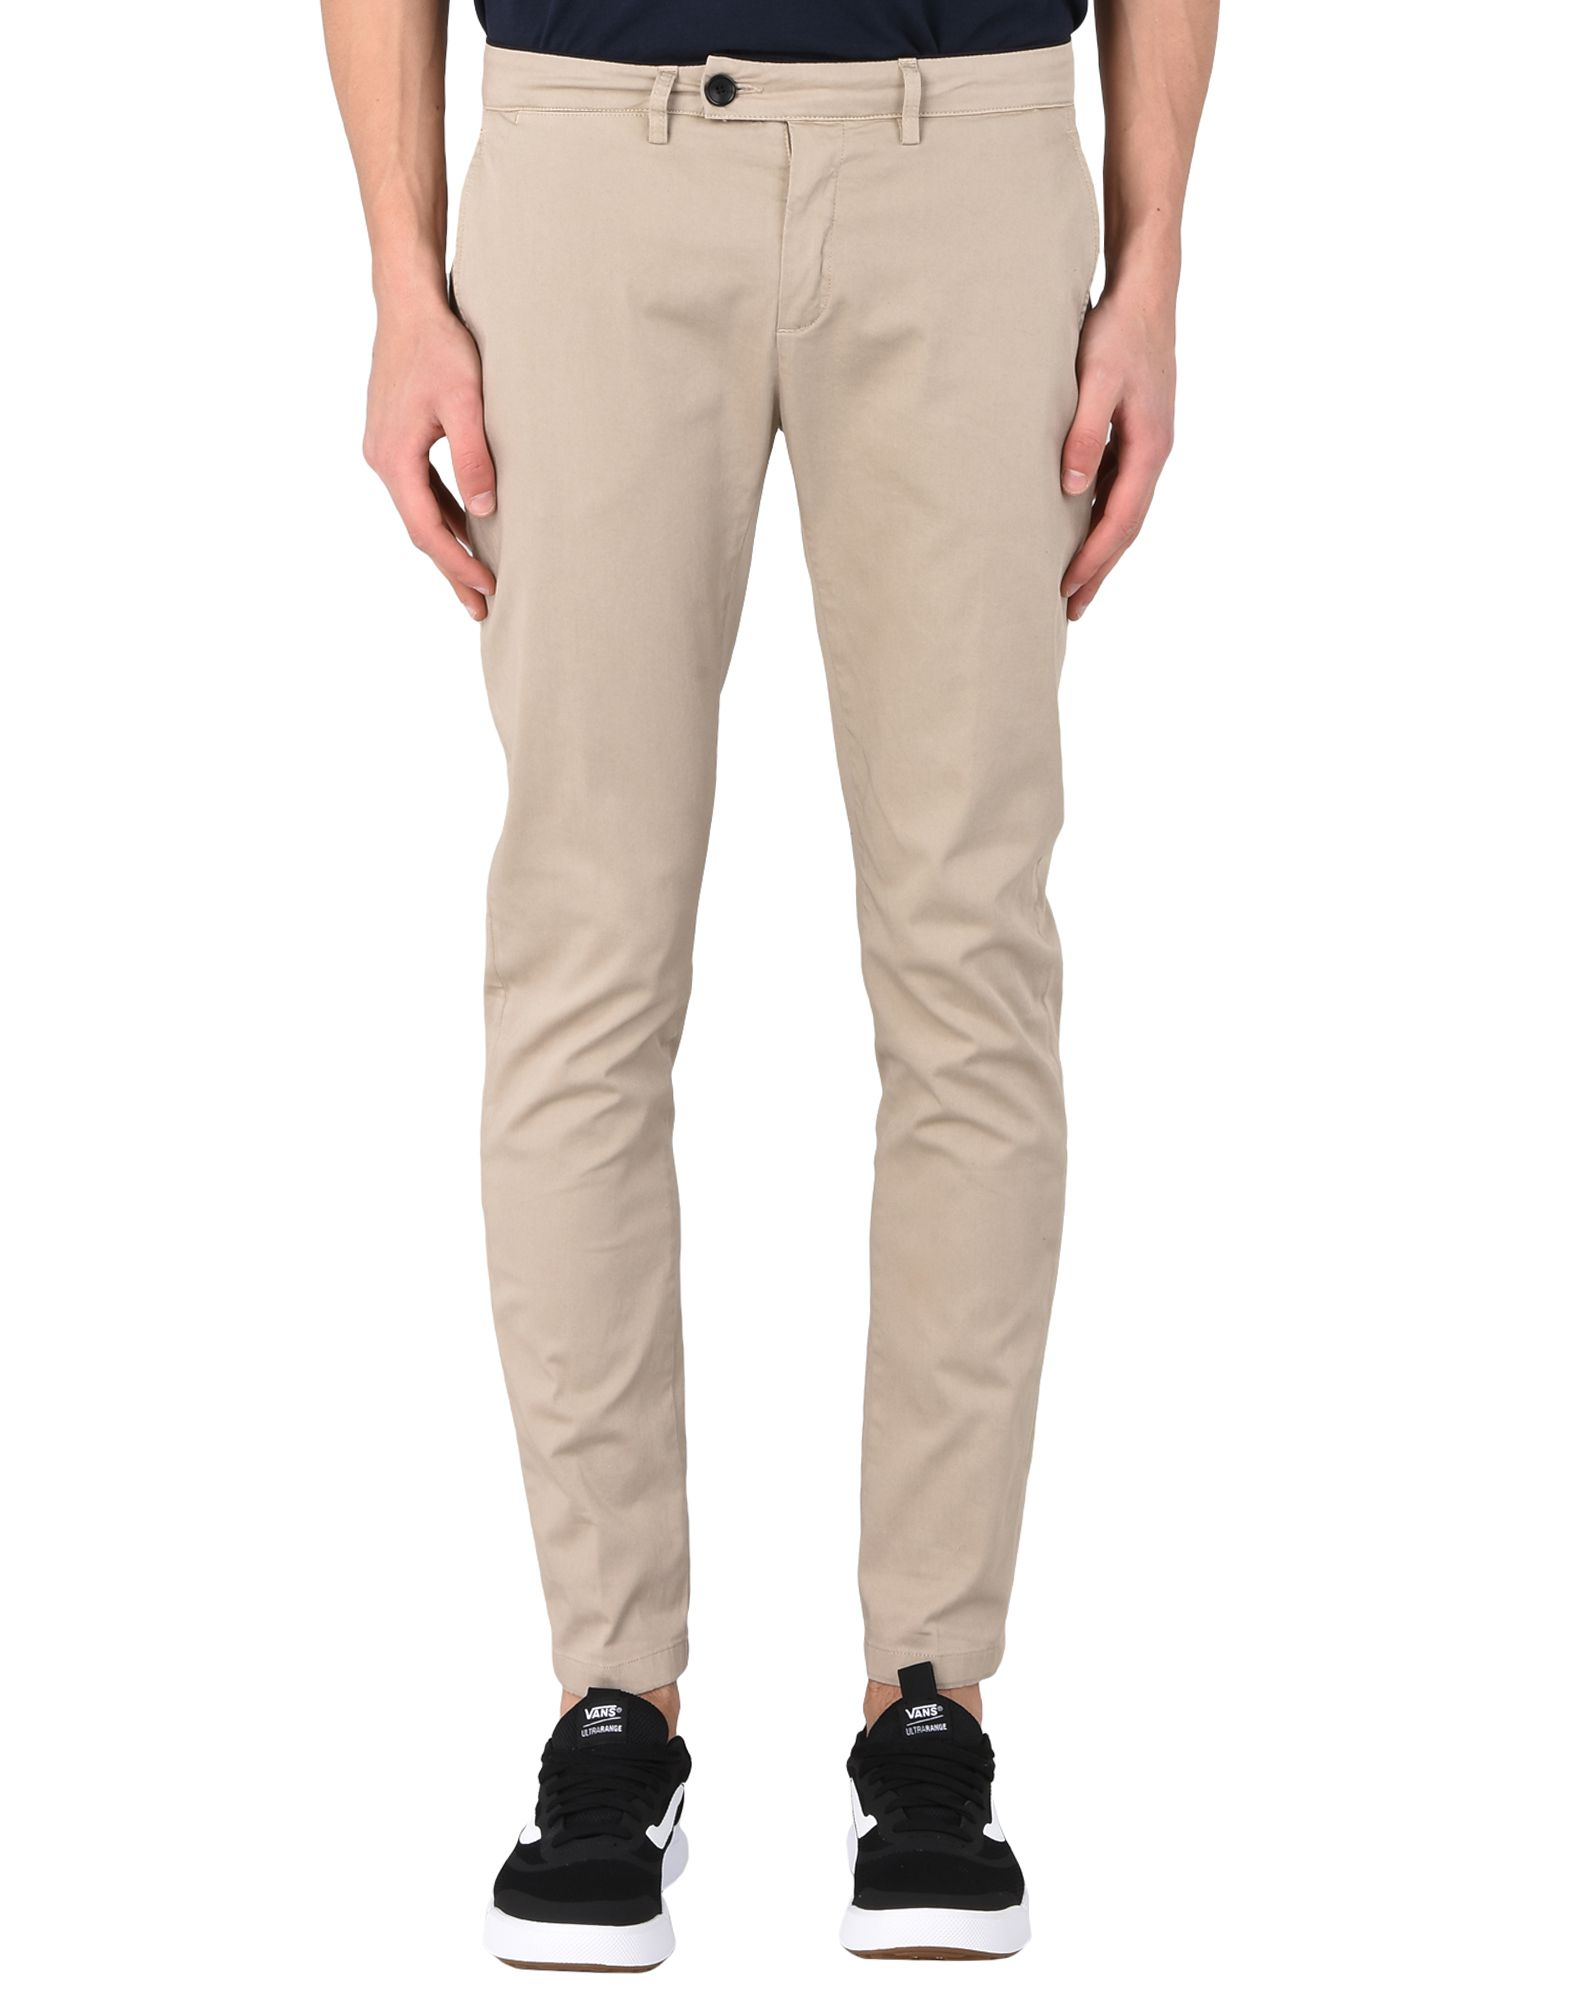 Chinos Department 5 Pantalone Mike - Donna - Acquista online su YOOX -  13164950JN